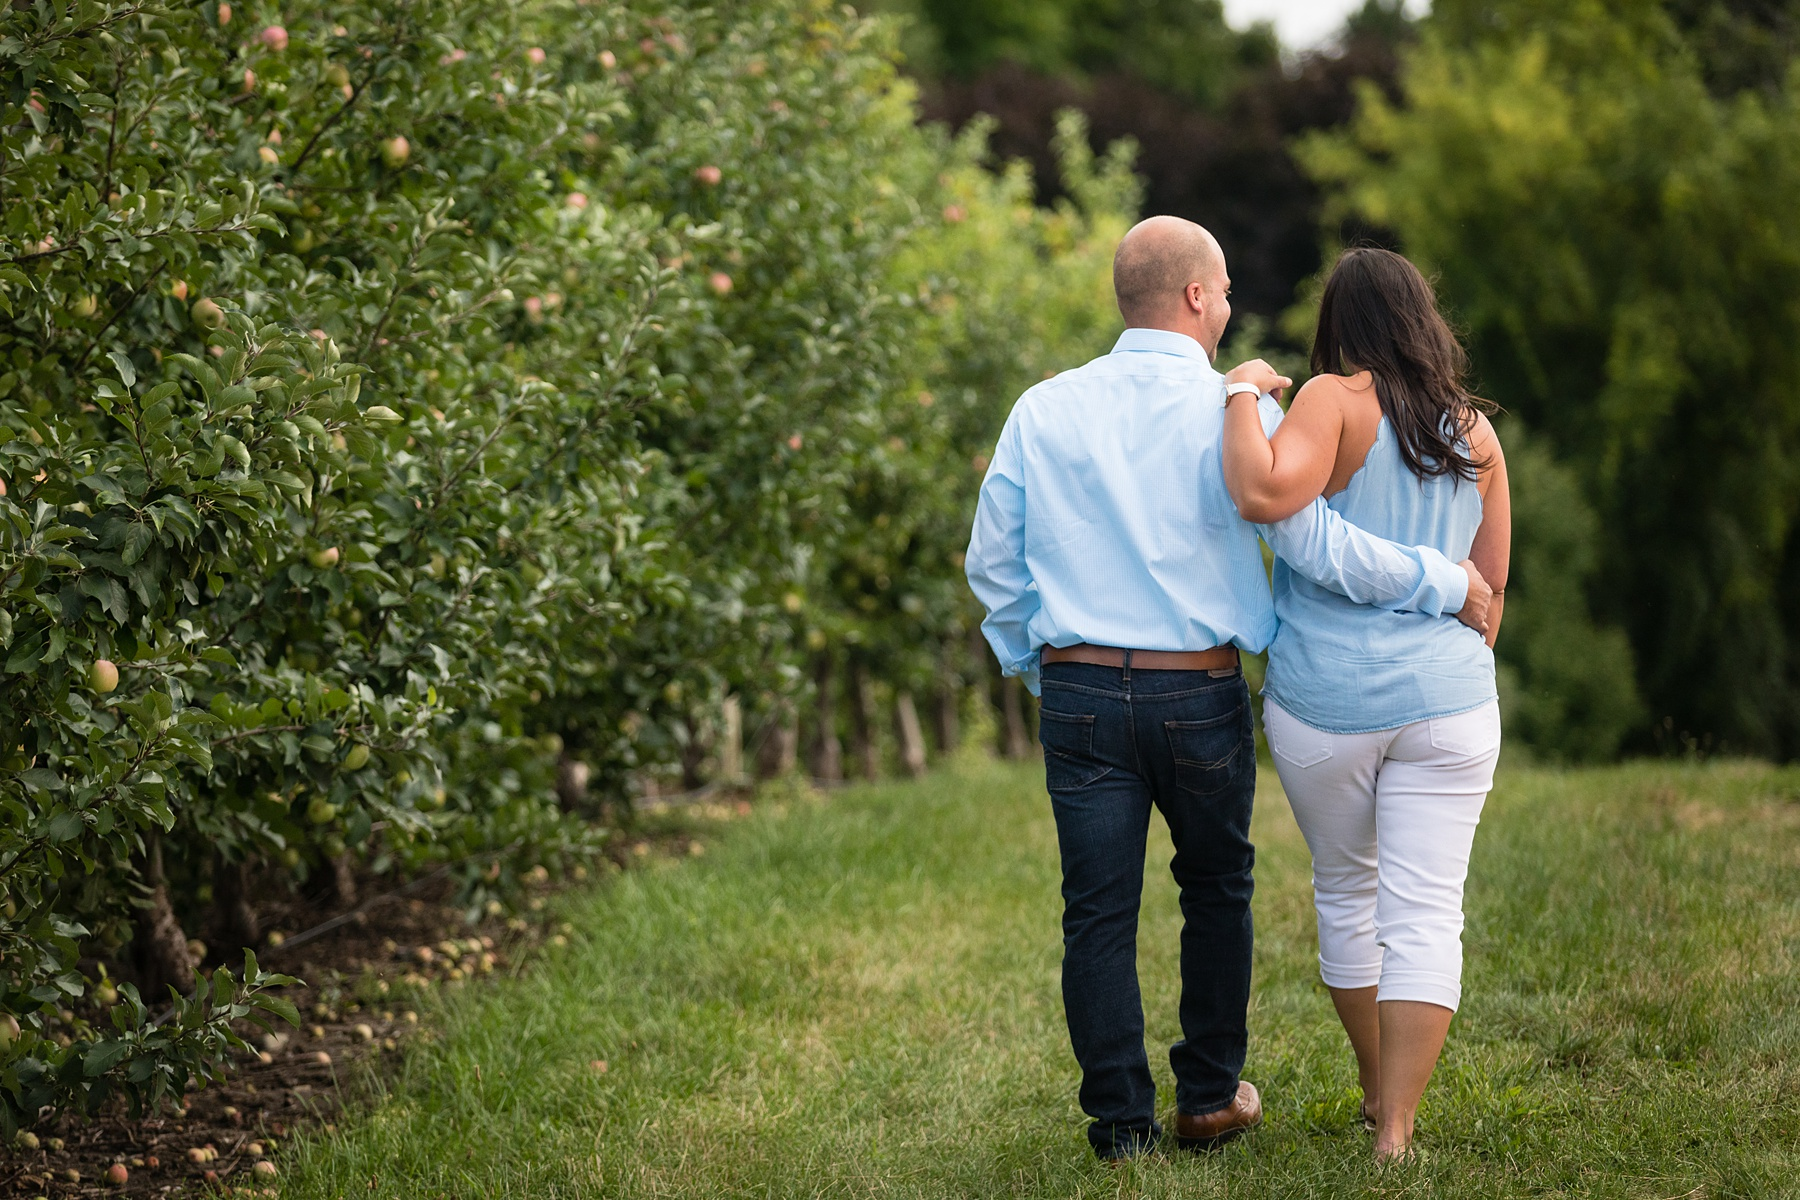 Brandon_Shafer_Photography_Danielle_Matt_Apple_Orchard_Engagement_Photos_0005.jpg